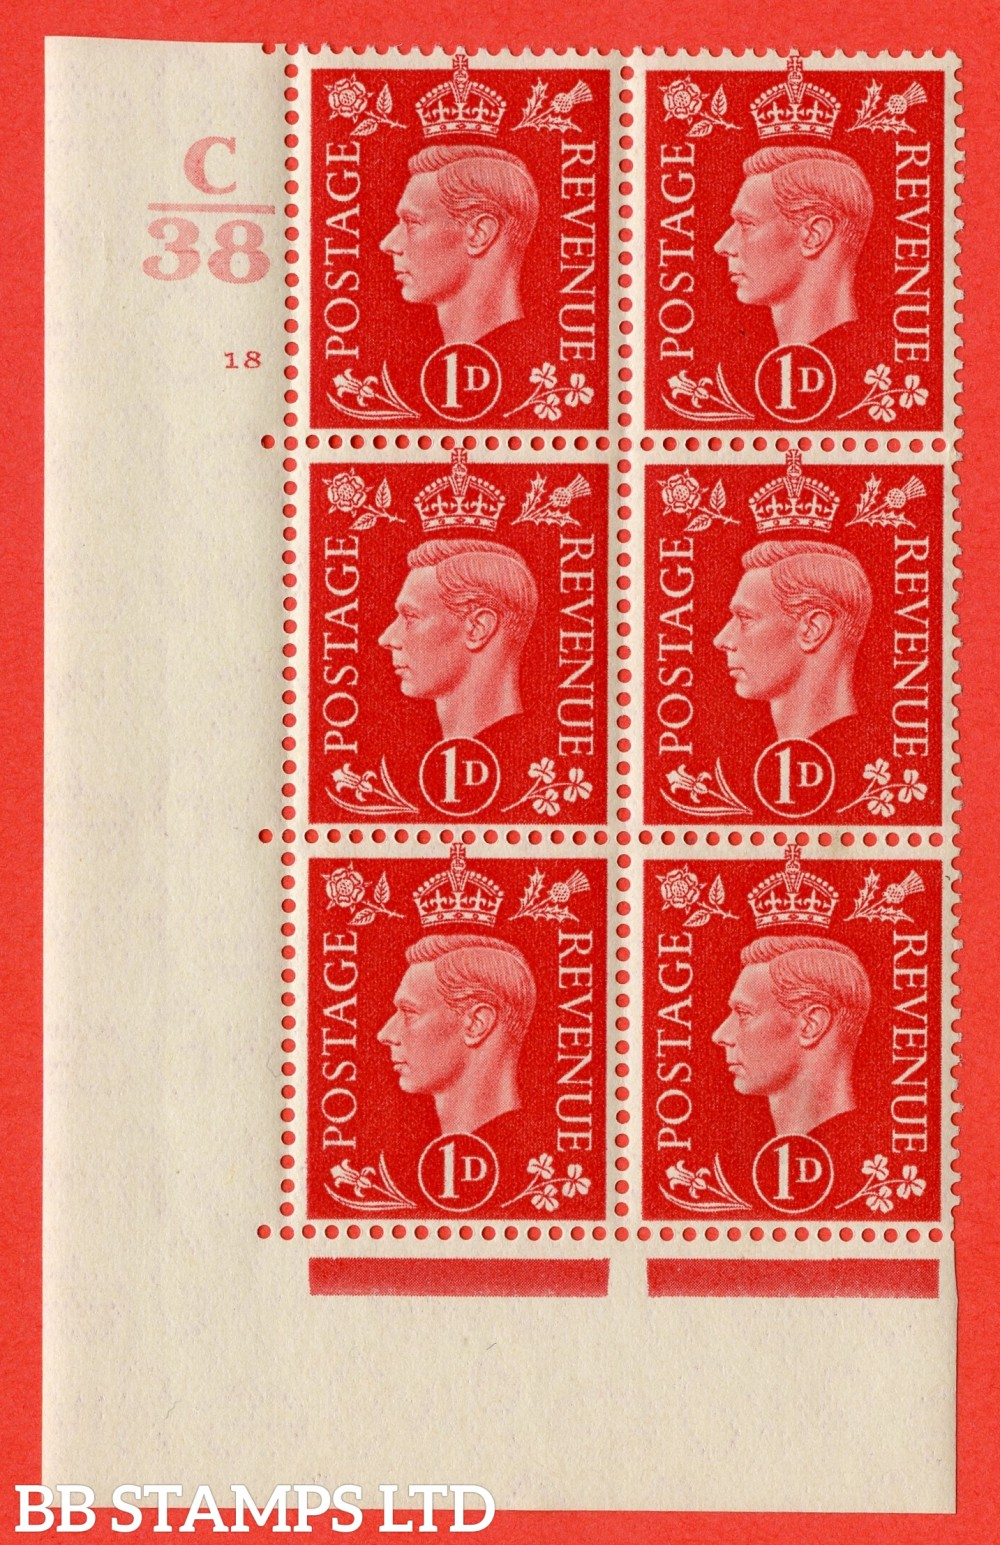 "SG. 463. Q4. 1d Scarlet. A very fine lightly mounted mint "" Control C38 cylinder 18 no dot "" block of 6 with perf type 5 E/I with marginal rule."